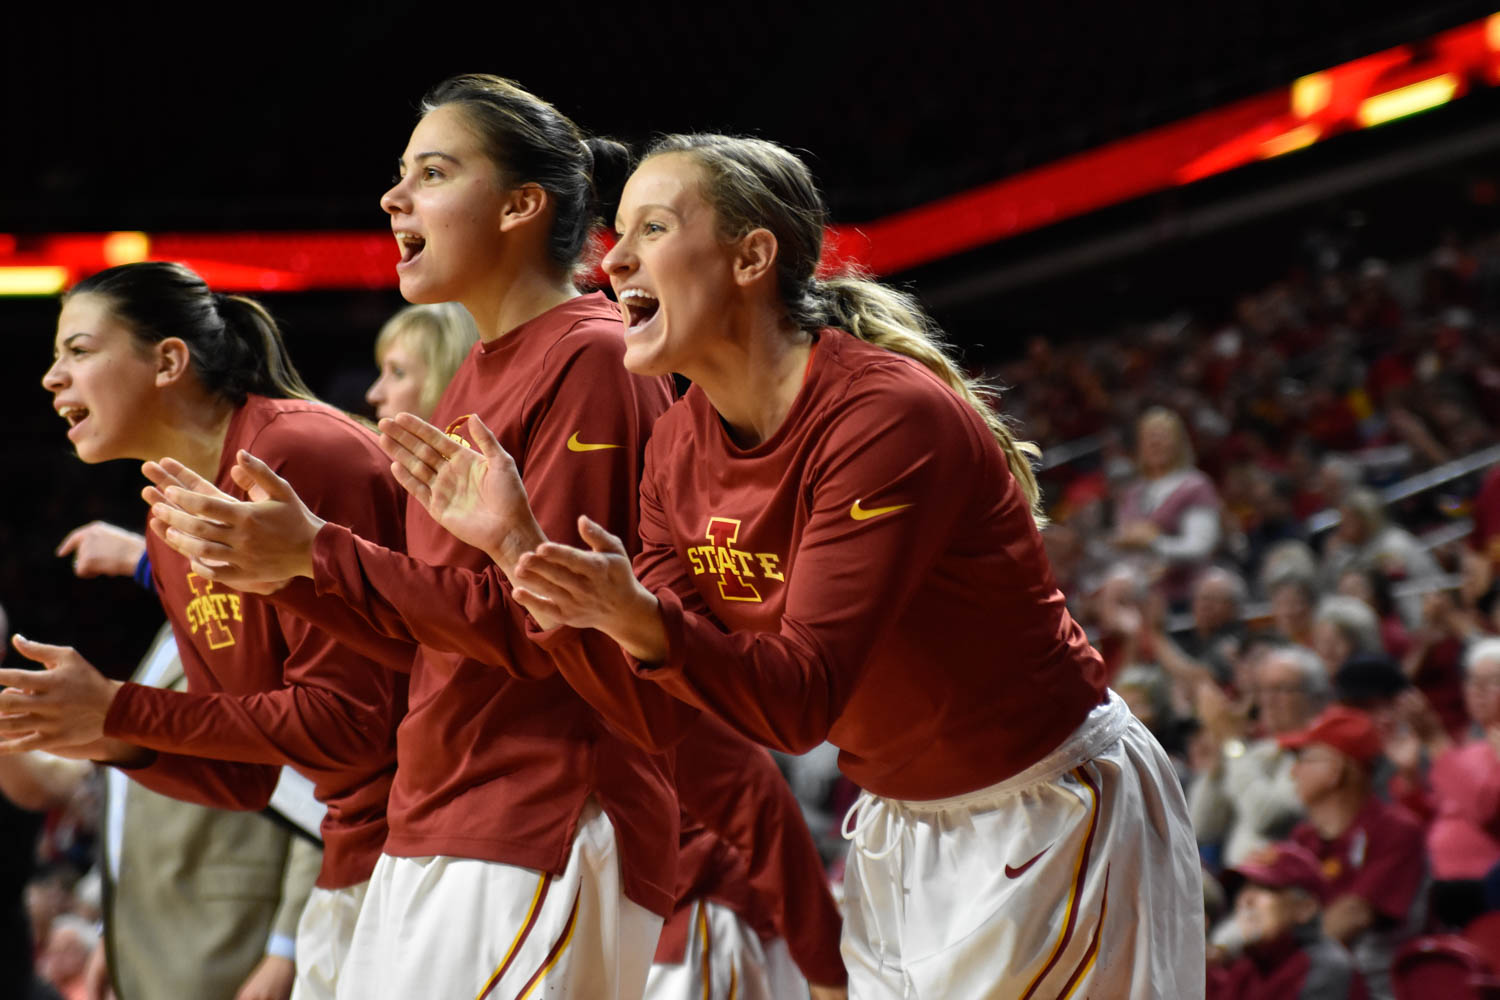 Senior guard Lexi Albrecht cheers for the Cyclones at the basketball game against UNI at Hilton Coliseum on Nov. 15. ISU won 76-68. Credit: Lani Tons